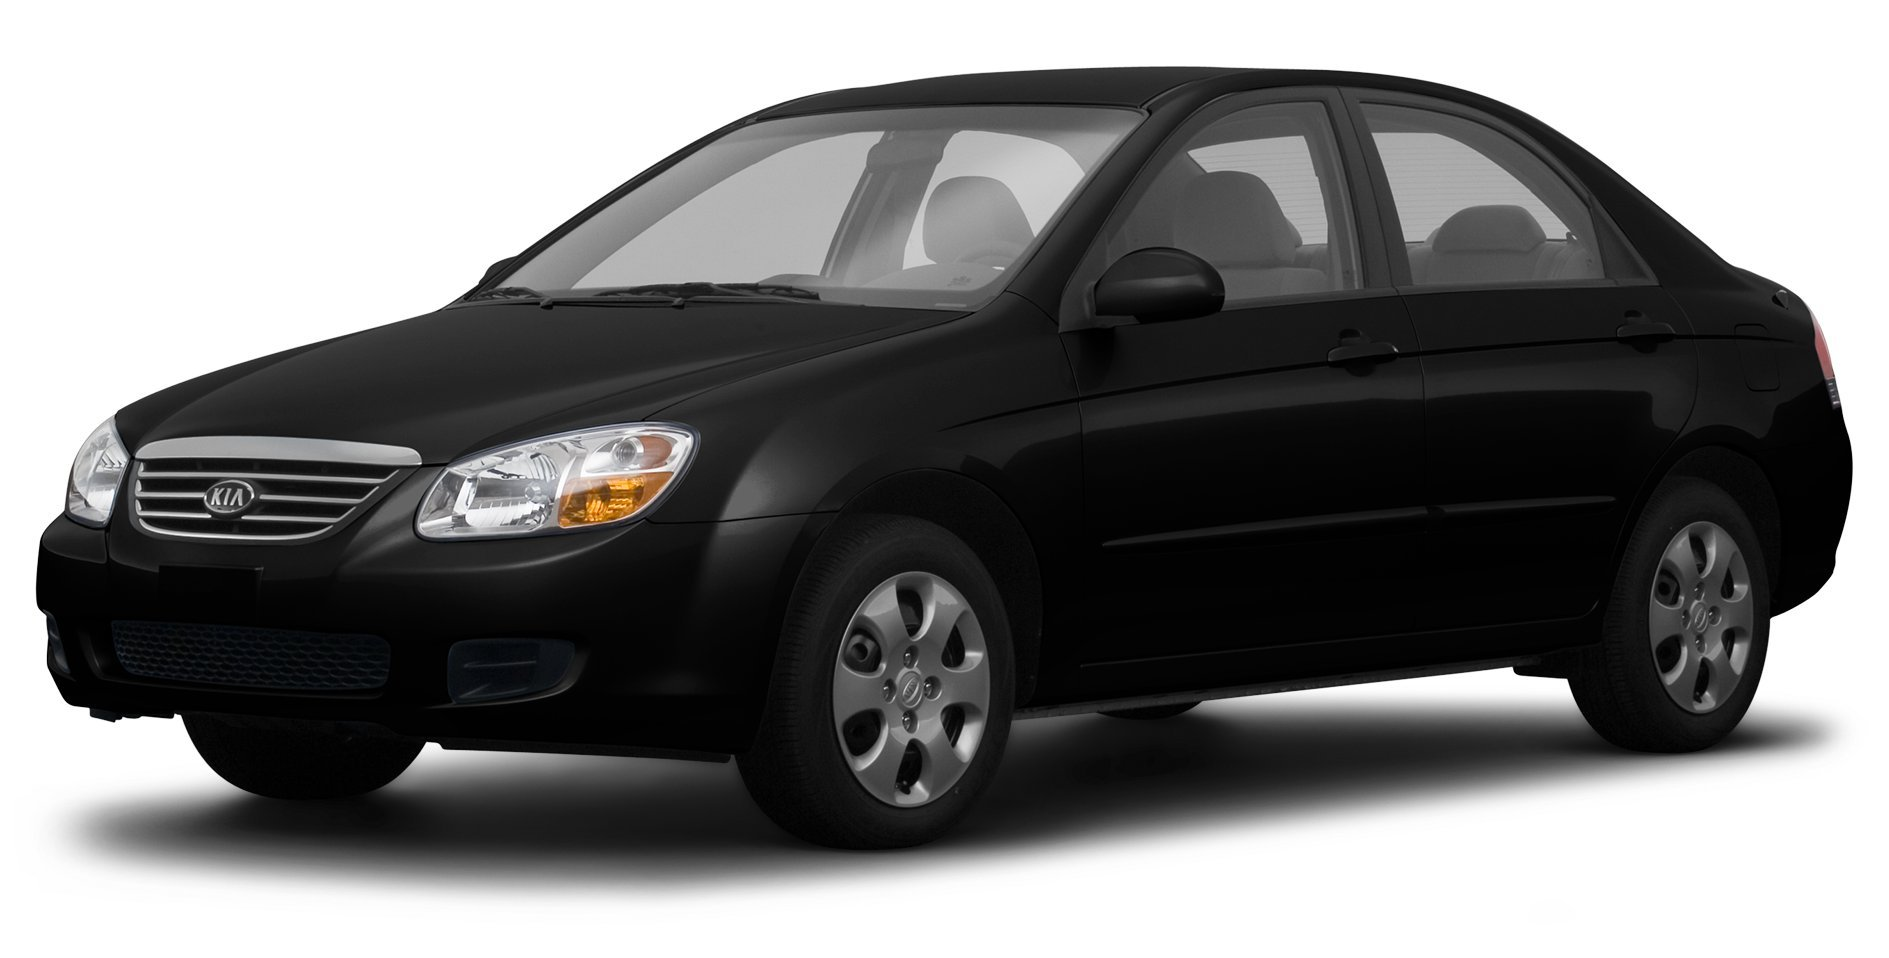 2008 kia spectra5 reviews images and specs. Black Bedroom Furniture Sets. Home Design Ideas